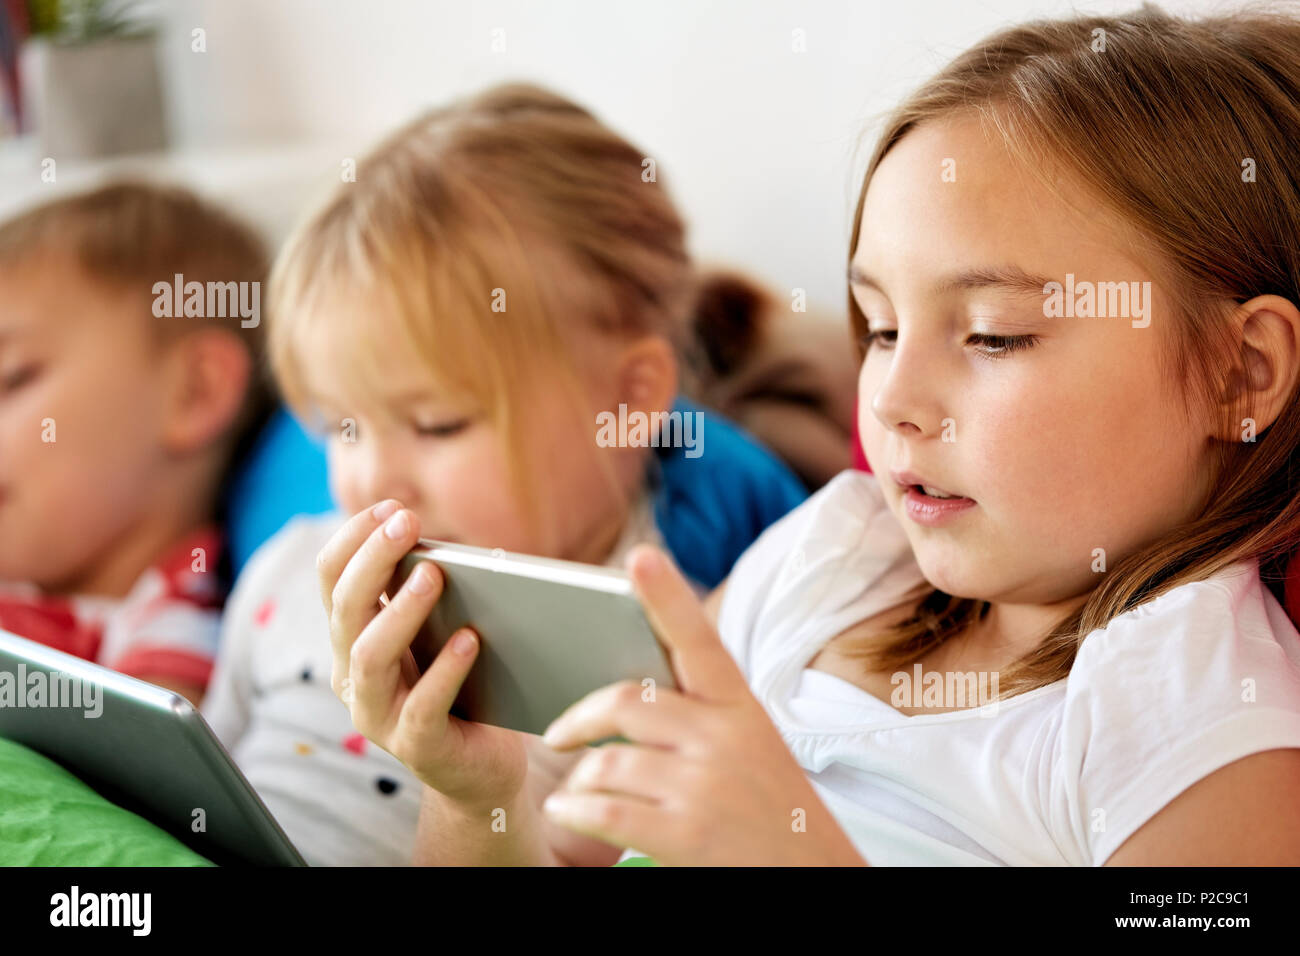 little kids with smartphone in bed at home - Stock Image